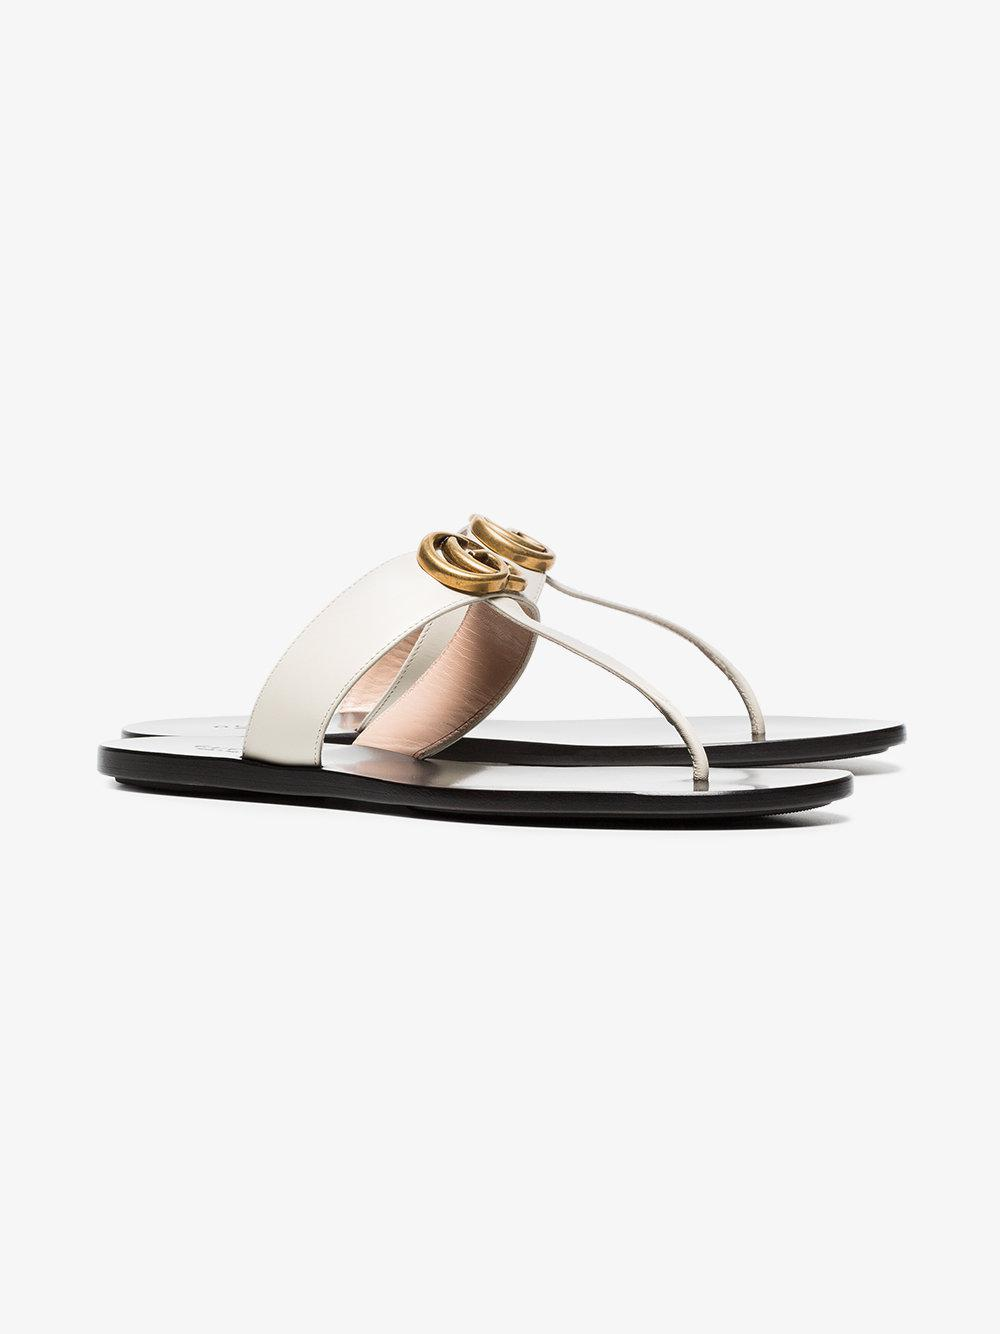 d178567ab8a Gucci Marmont Flat Leather Sandals in White - Lyst